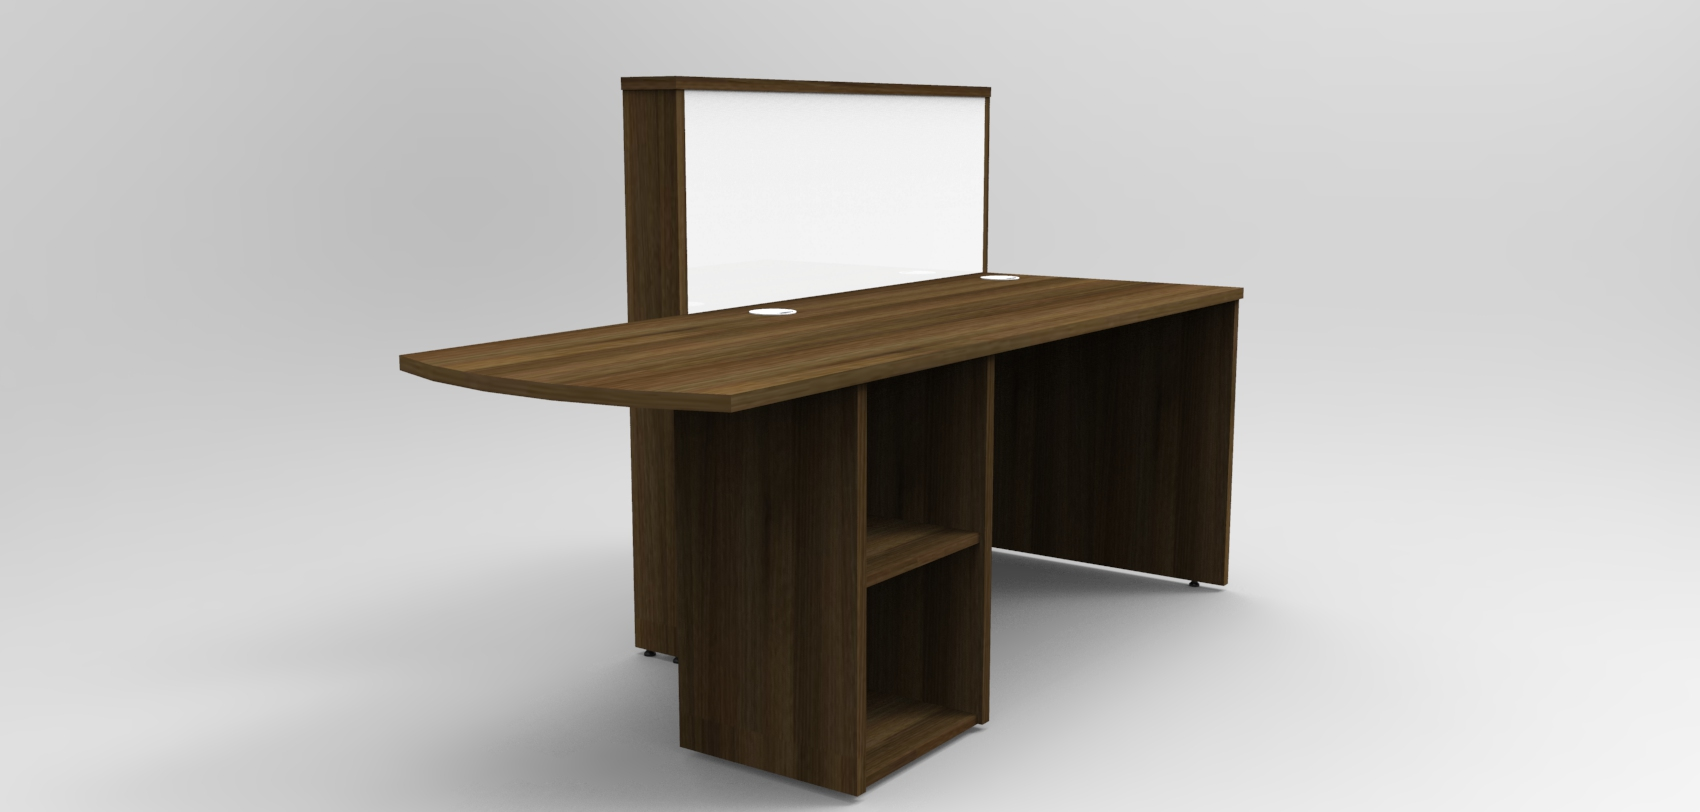 Image 4UB - Tall Walnut and White tall compact Union reception desk. Rear view showing open shelf unit